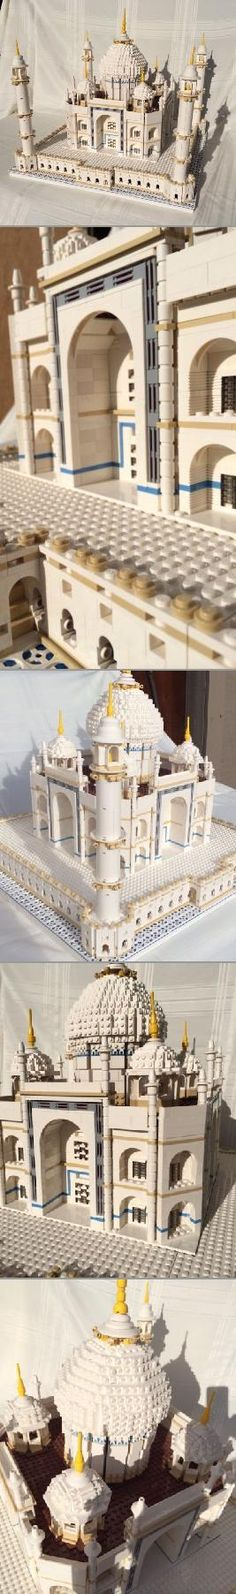 The beautiful LEGO Taj Mahal has almost 6,000 pieces and is assembled in three separate sections due to the size! Designed for experienced builders only! Do you dare?